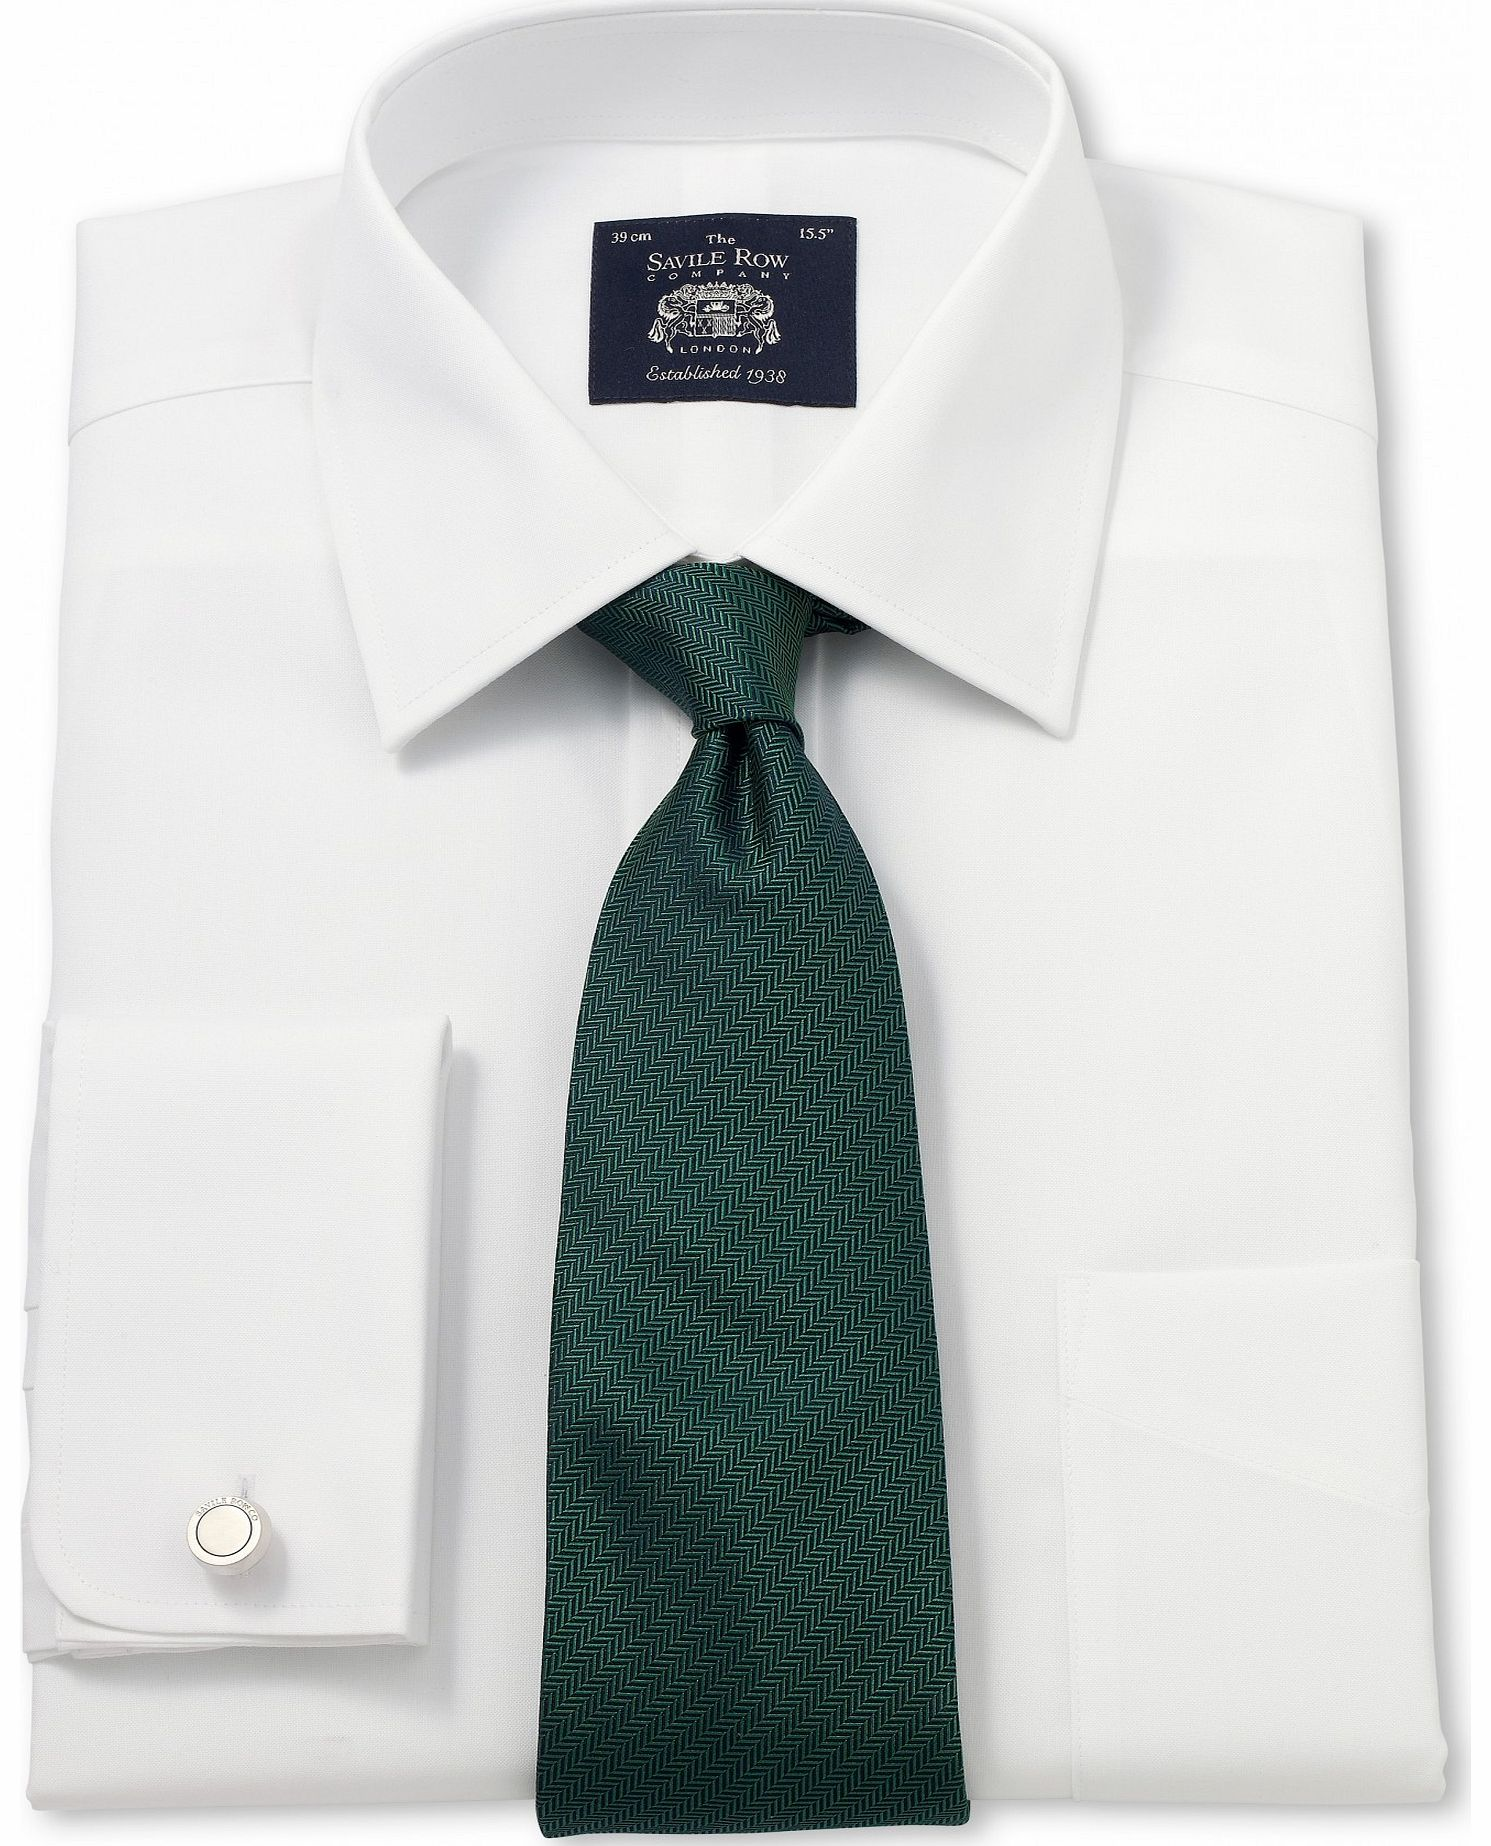 Savile Row Company White Non-Iron Classic Fit Shirt 17 1/2`` product image